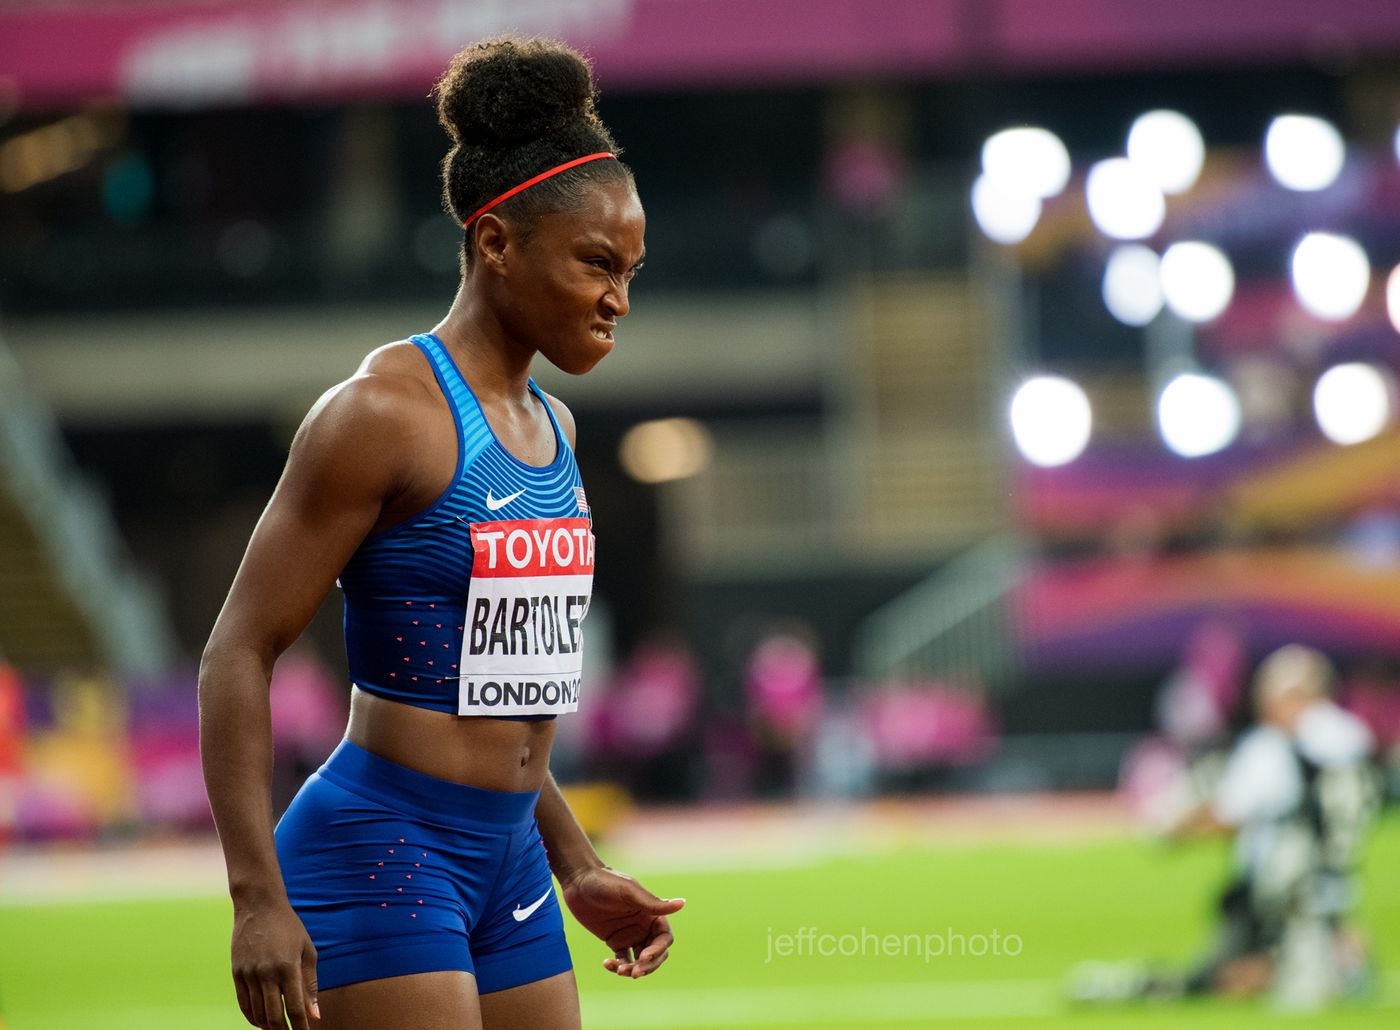 2017-IAAF-WC-London-night-8-bartoletta-ljw--1981--jeff-cohen-photo--.jpg